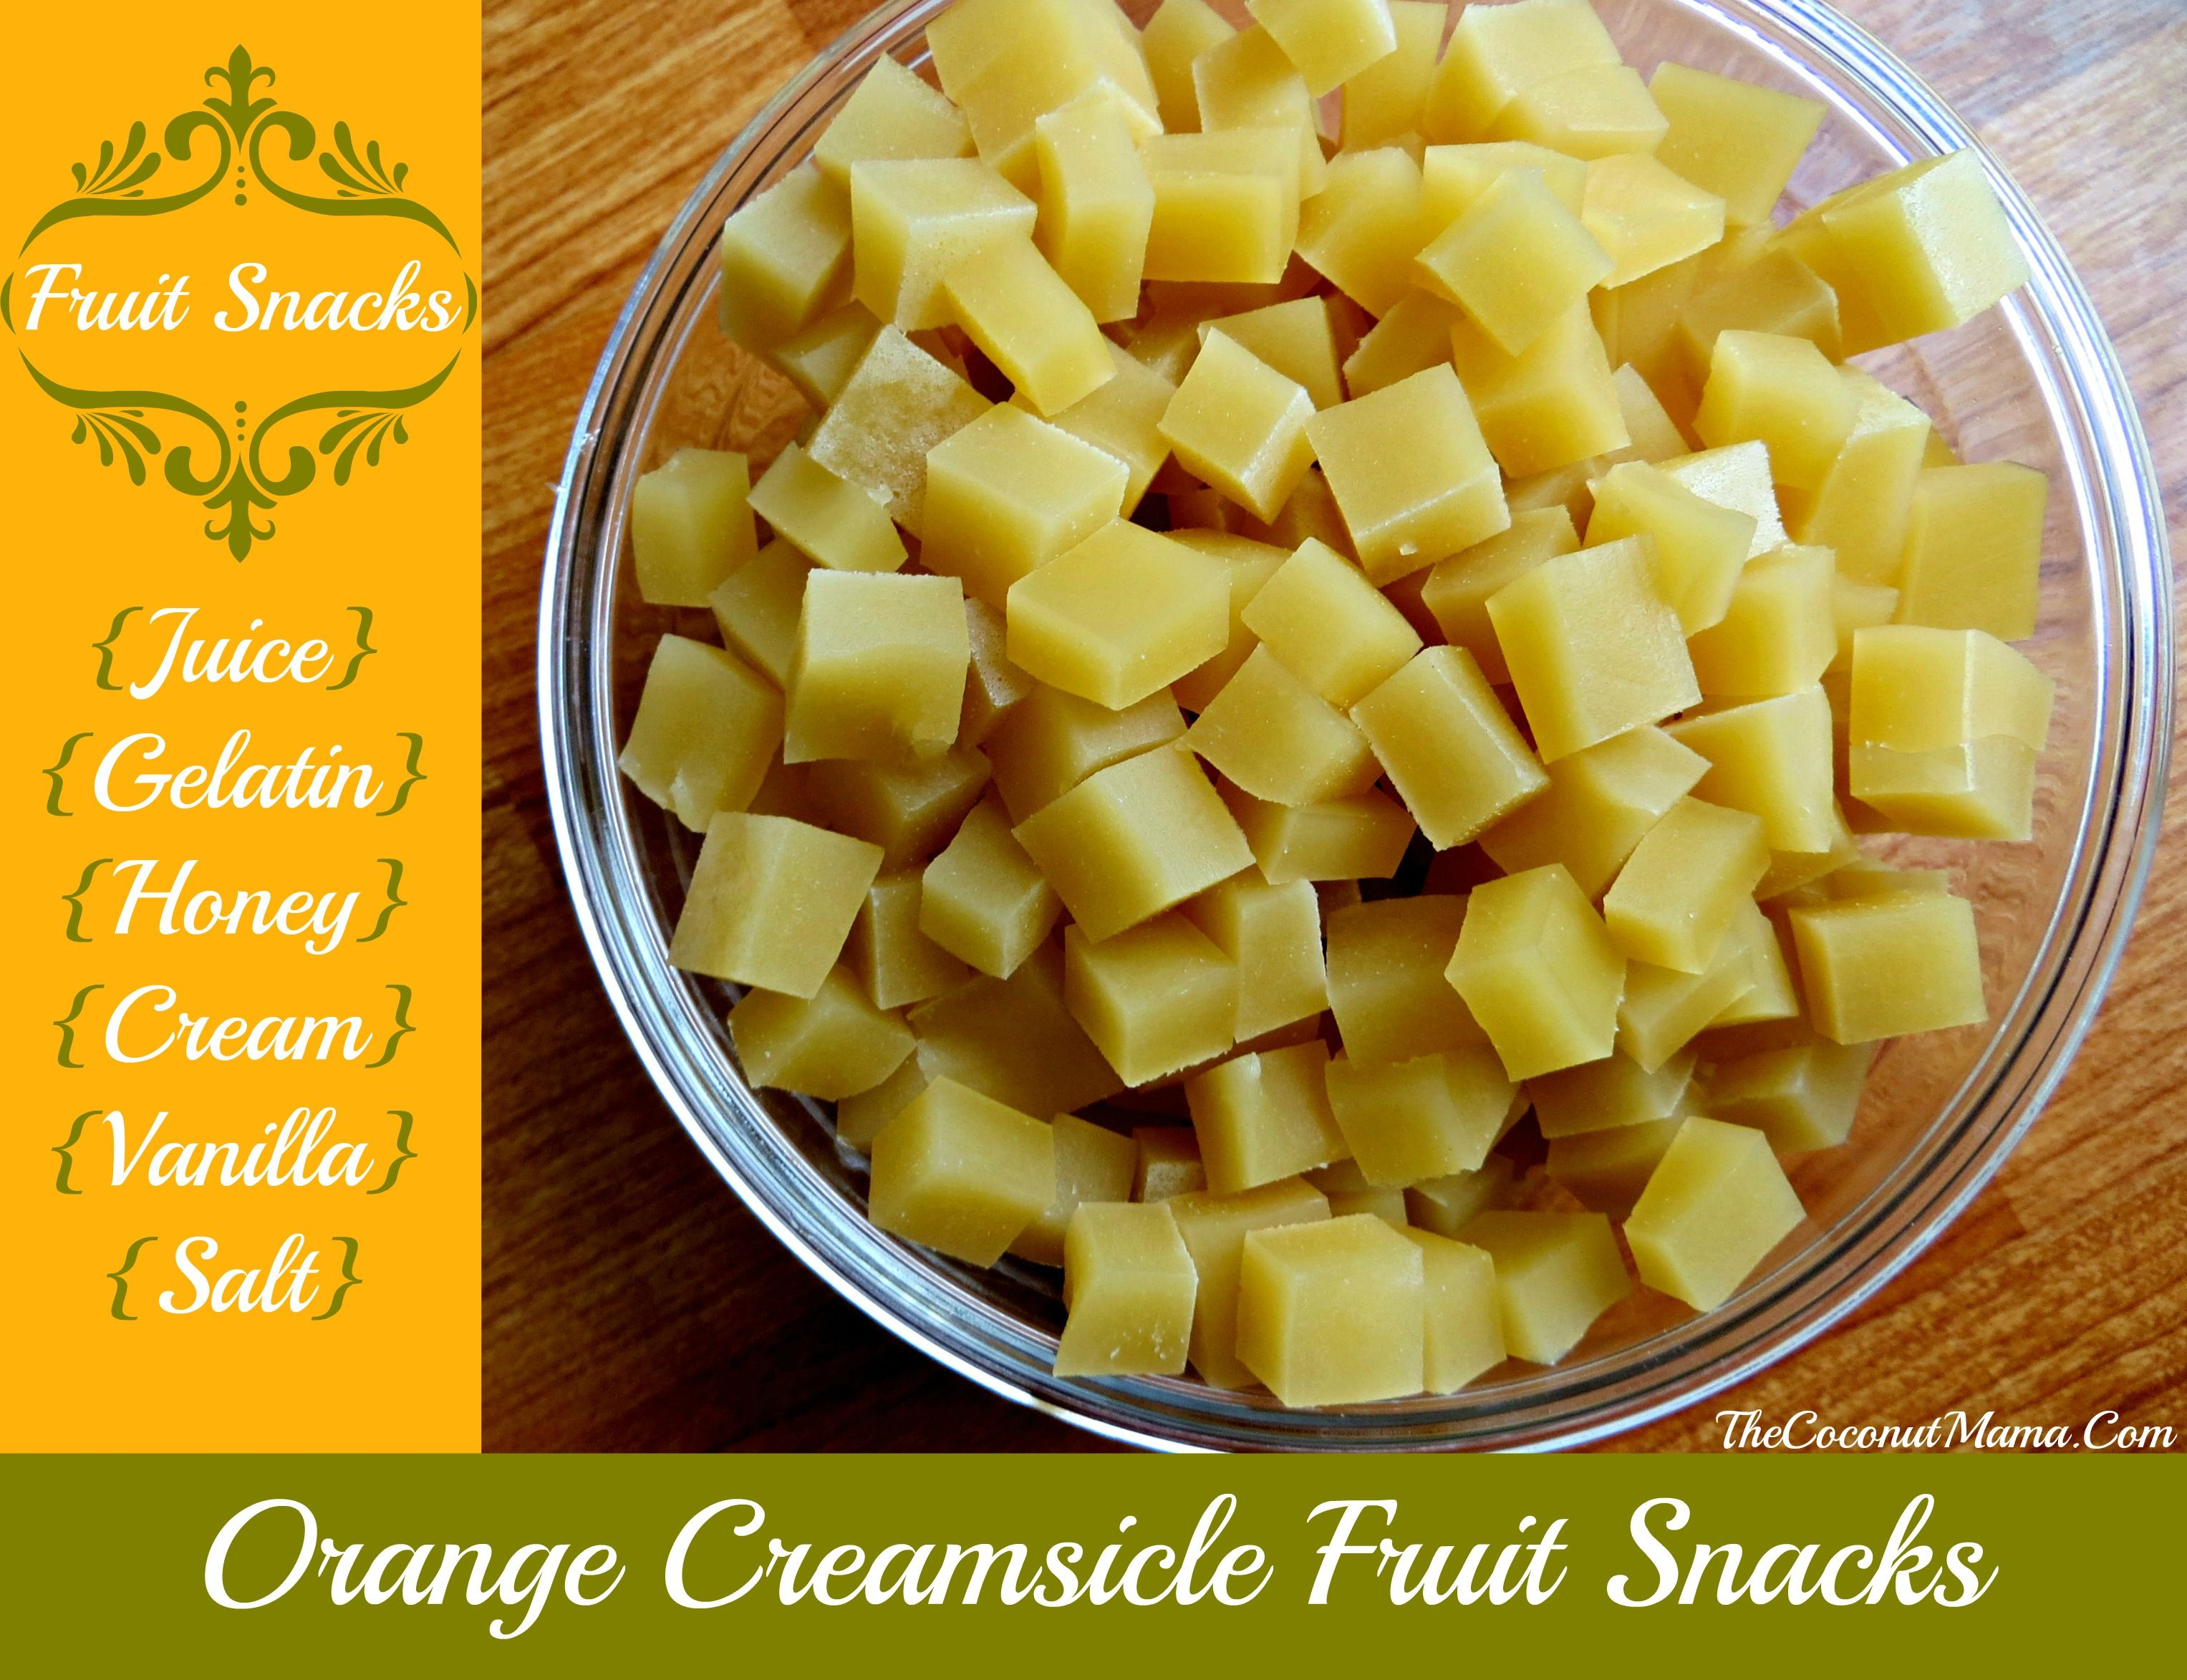 Orange Creamsicle Gummy Fruit Snacks ~ From The Spunky Coconut ~ Lots of protein from the gelatin (9 grams of protein per tablespoon)